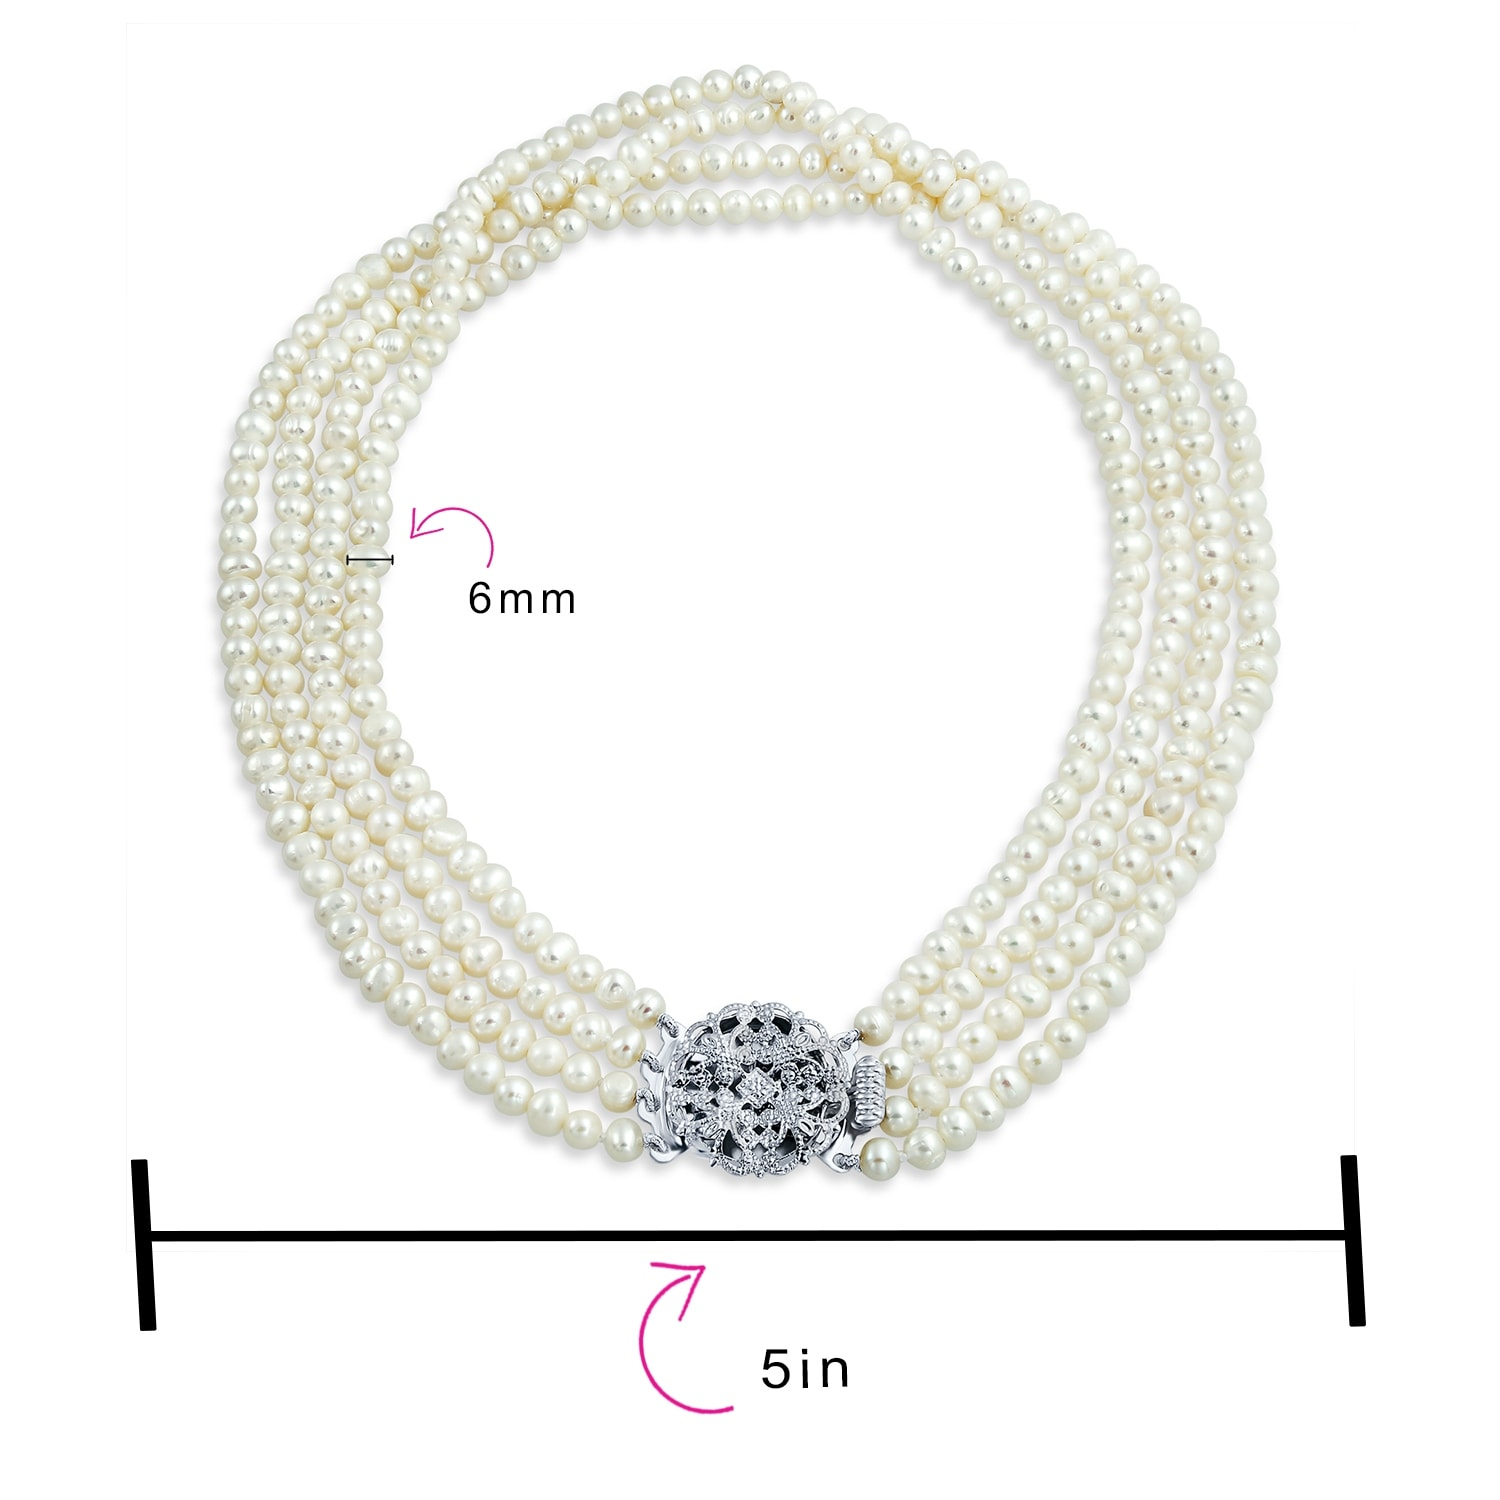 White /& Multi Length 8mm Cultured Pearl Endless Strand Necklace US Seller